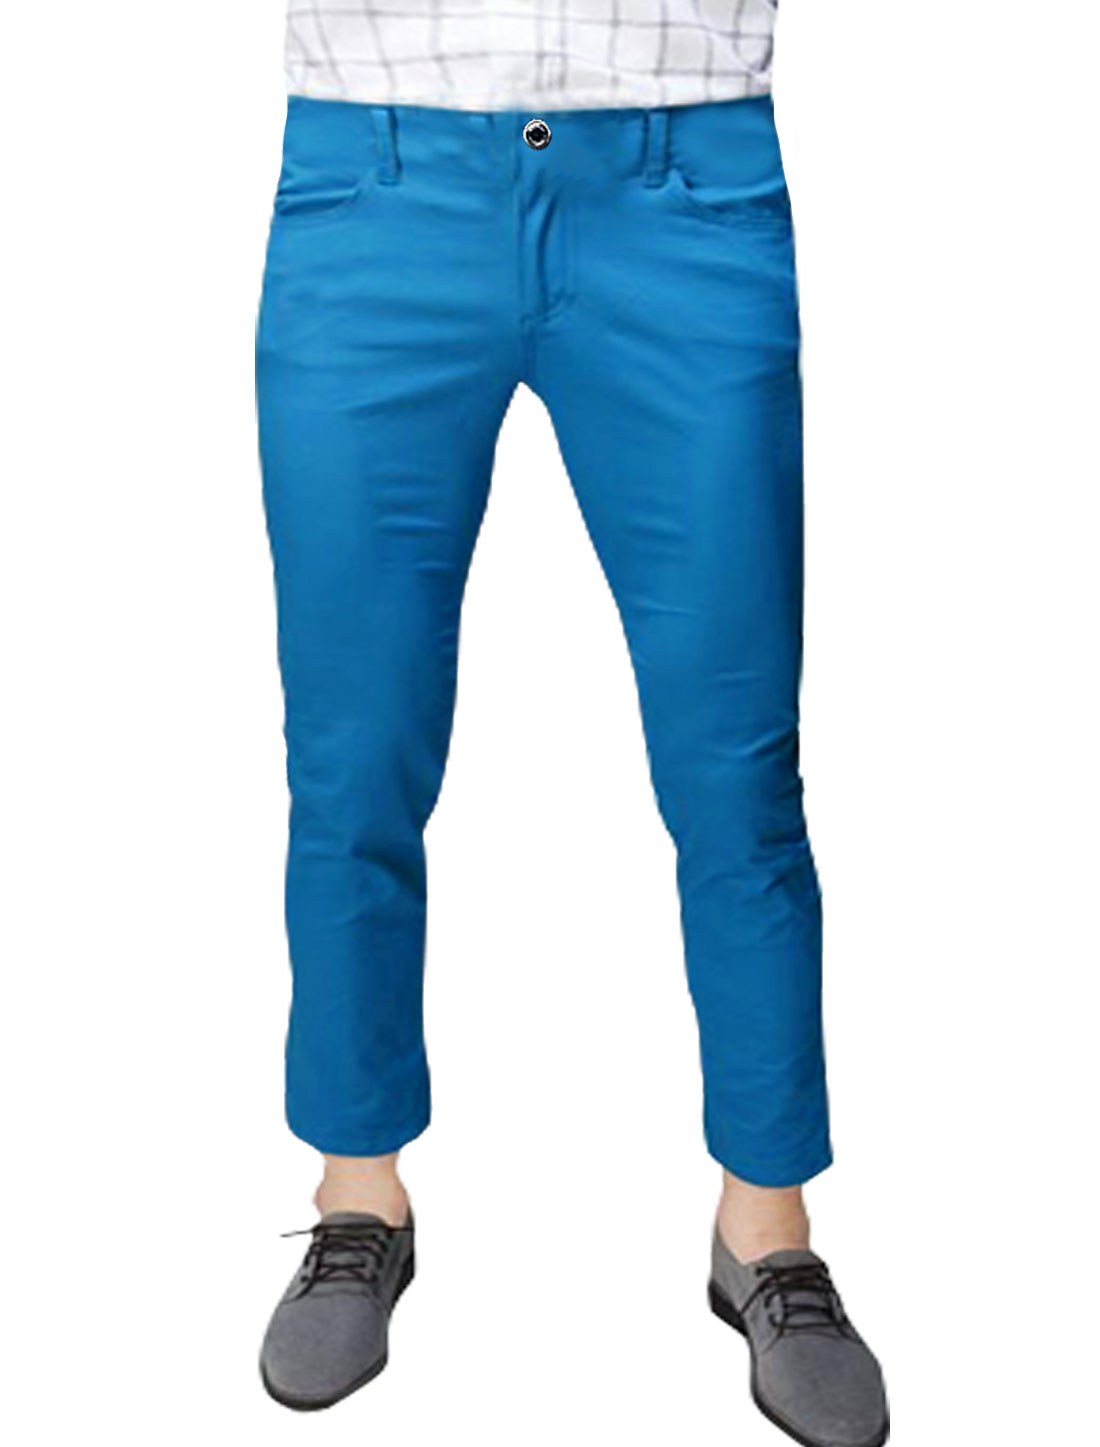 Men Mid Rise Zip Fly Slant Pockets Casual Cropped Pants Royal Blue W36